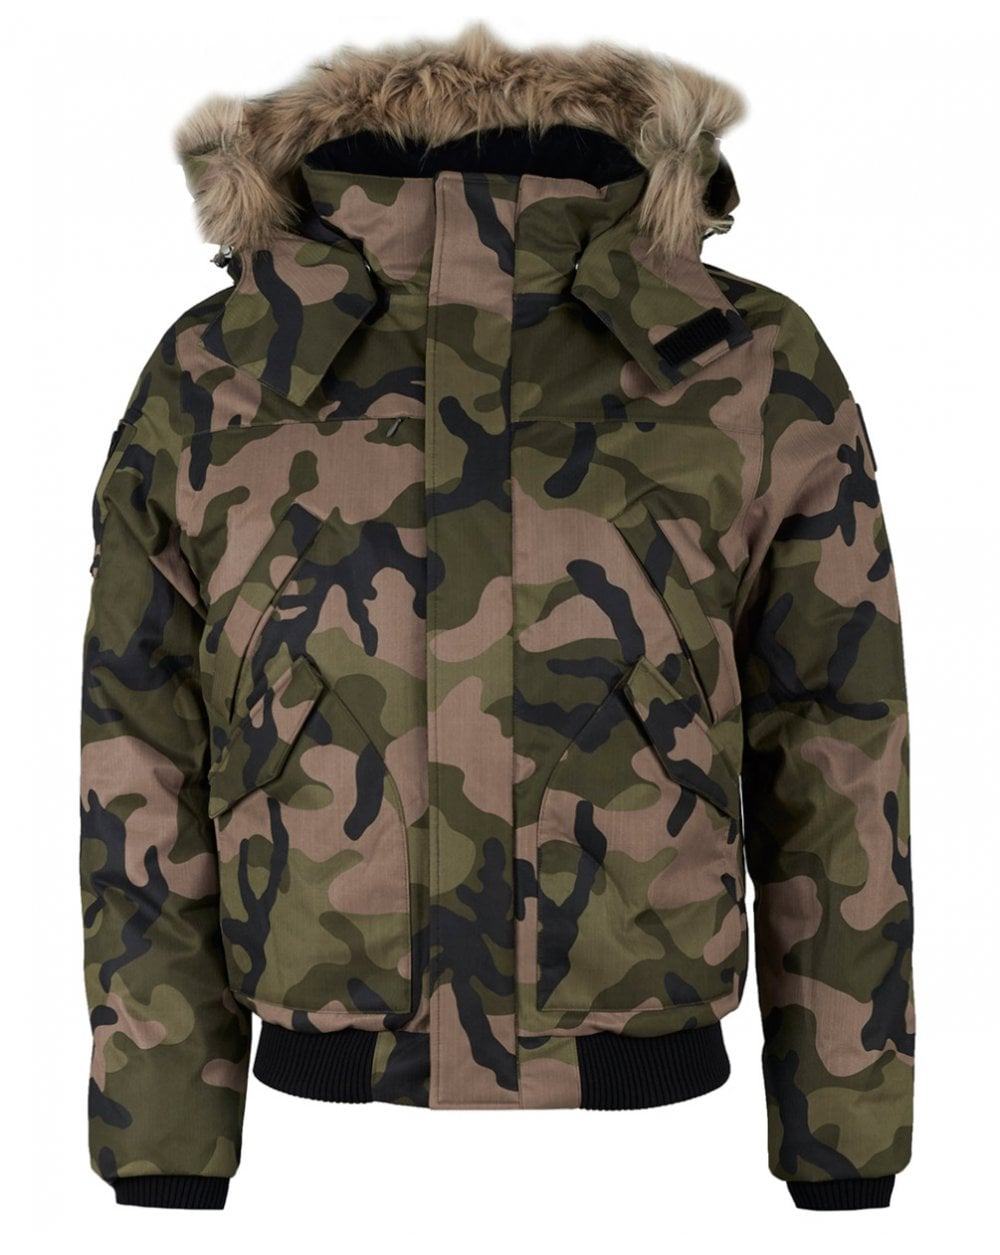 Nobis hooded bomber jacket - £472.49 - Great cut, shape and camo print makes this a piece you will keep in your wardrobe for years